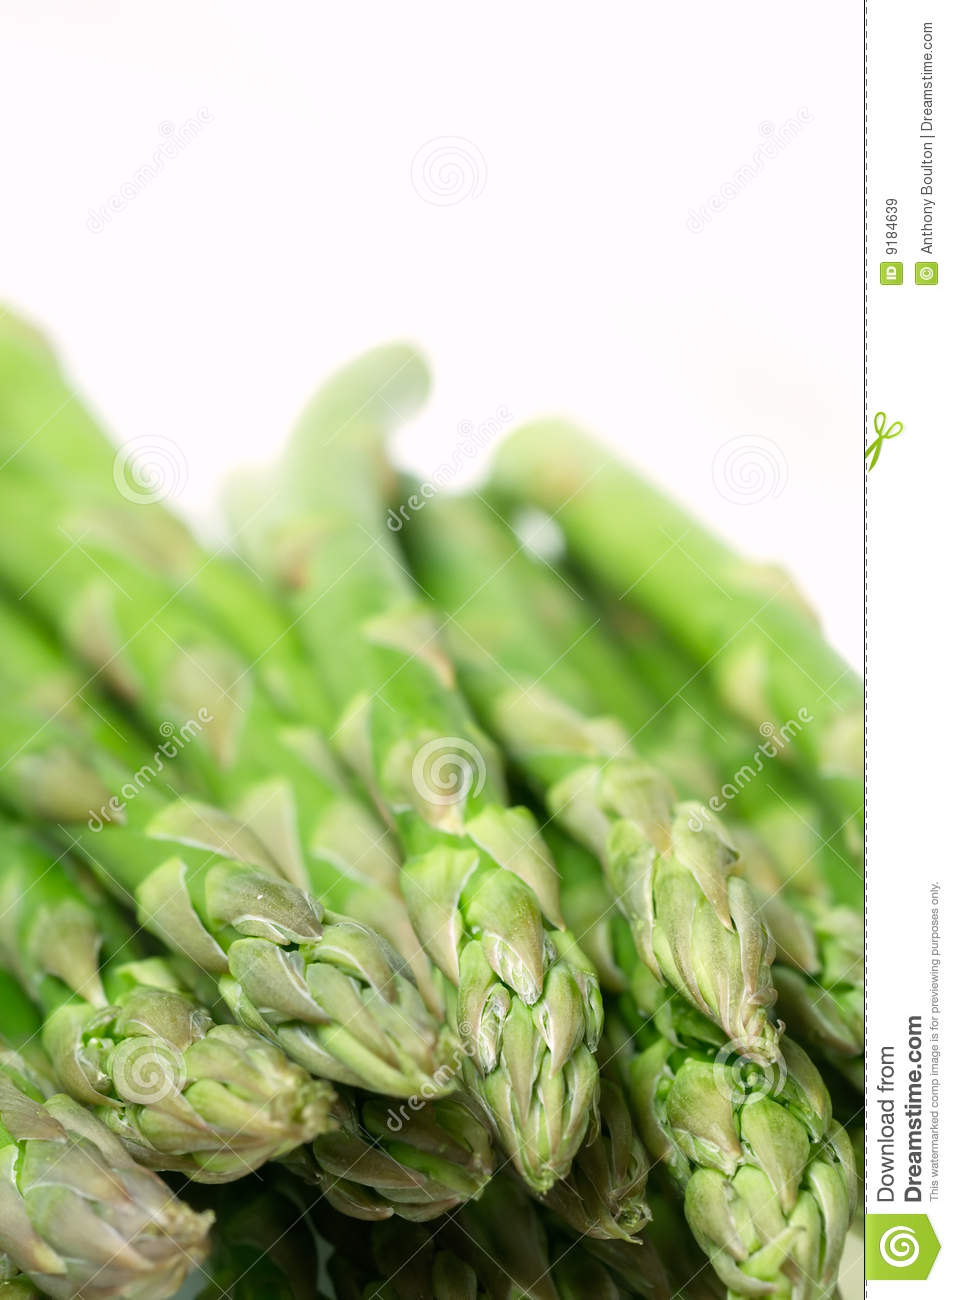 how to cook raw asparagus